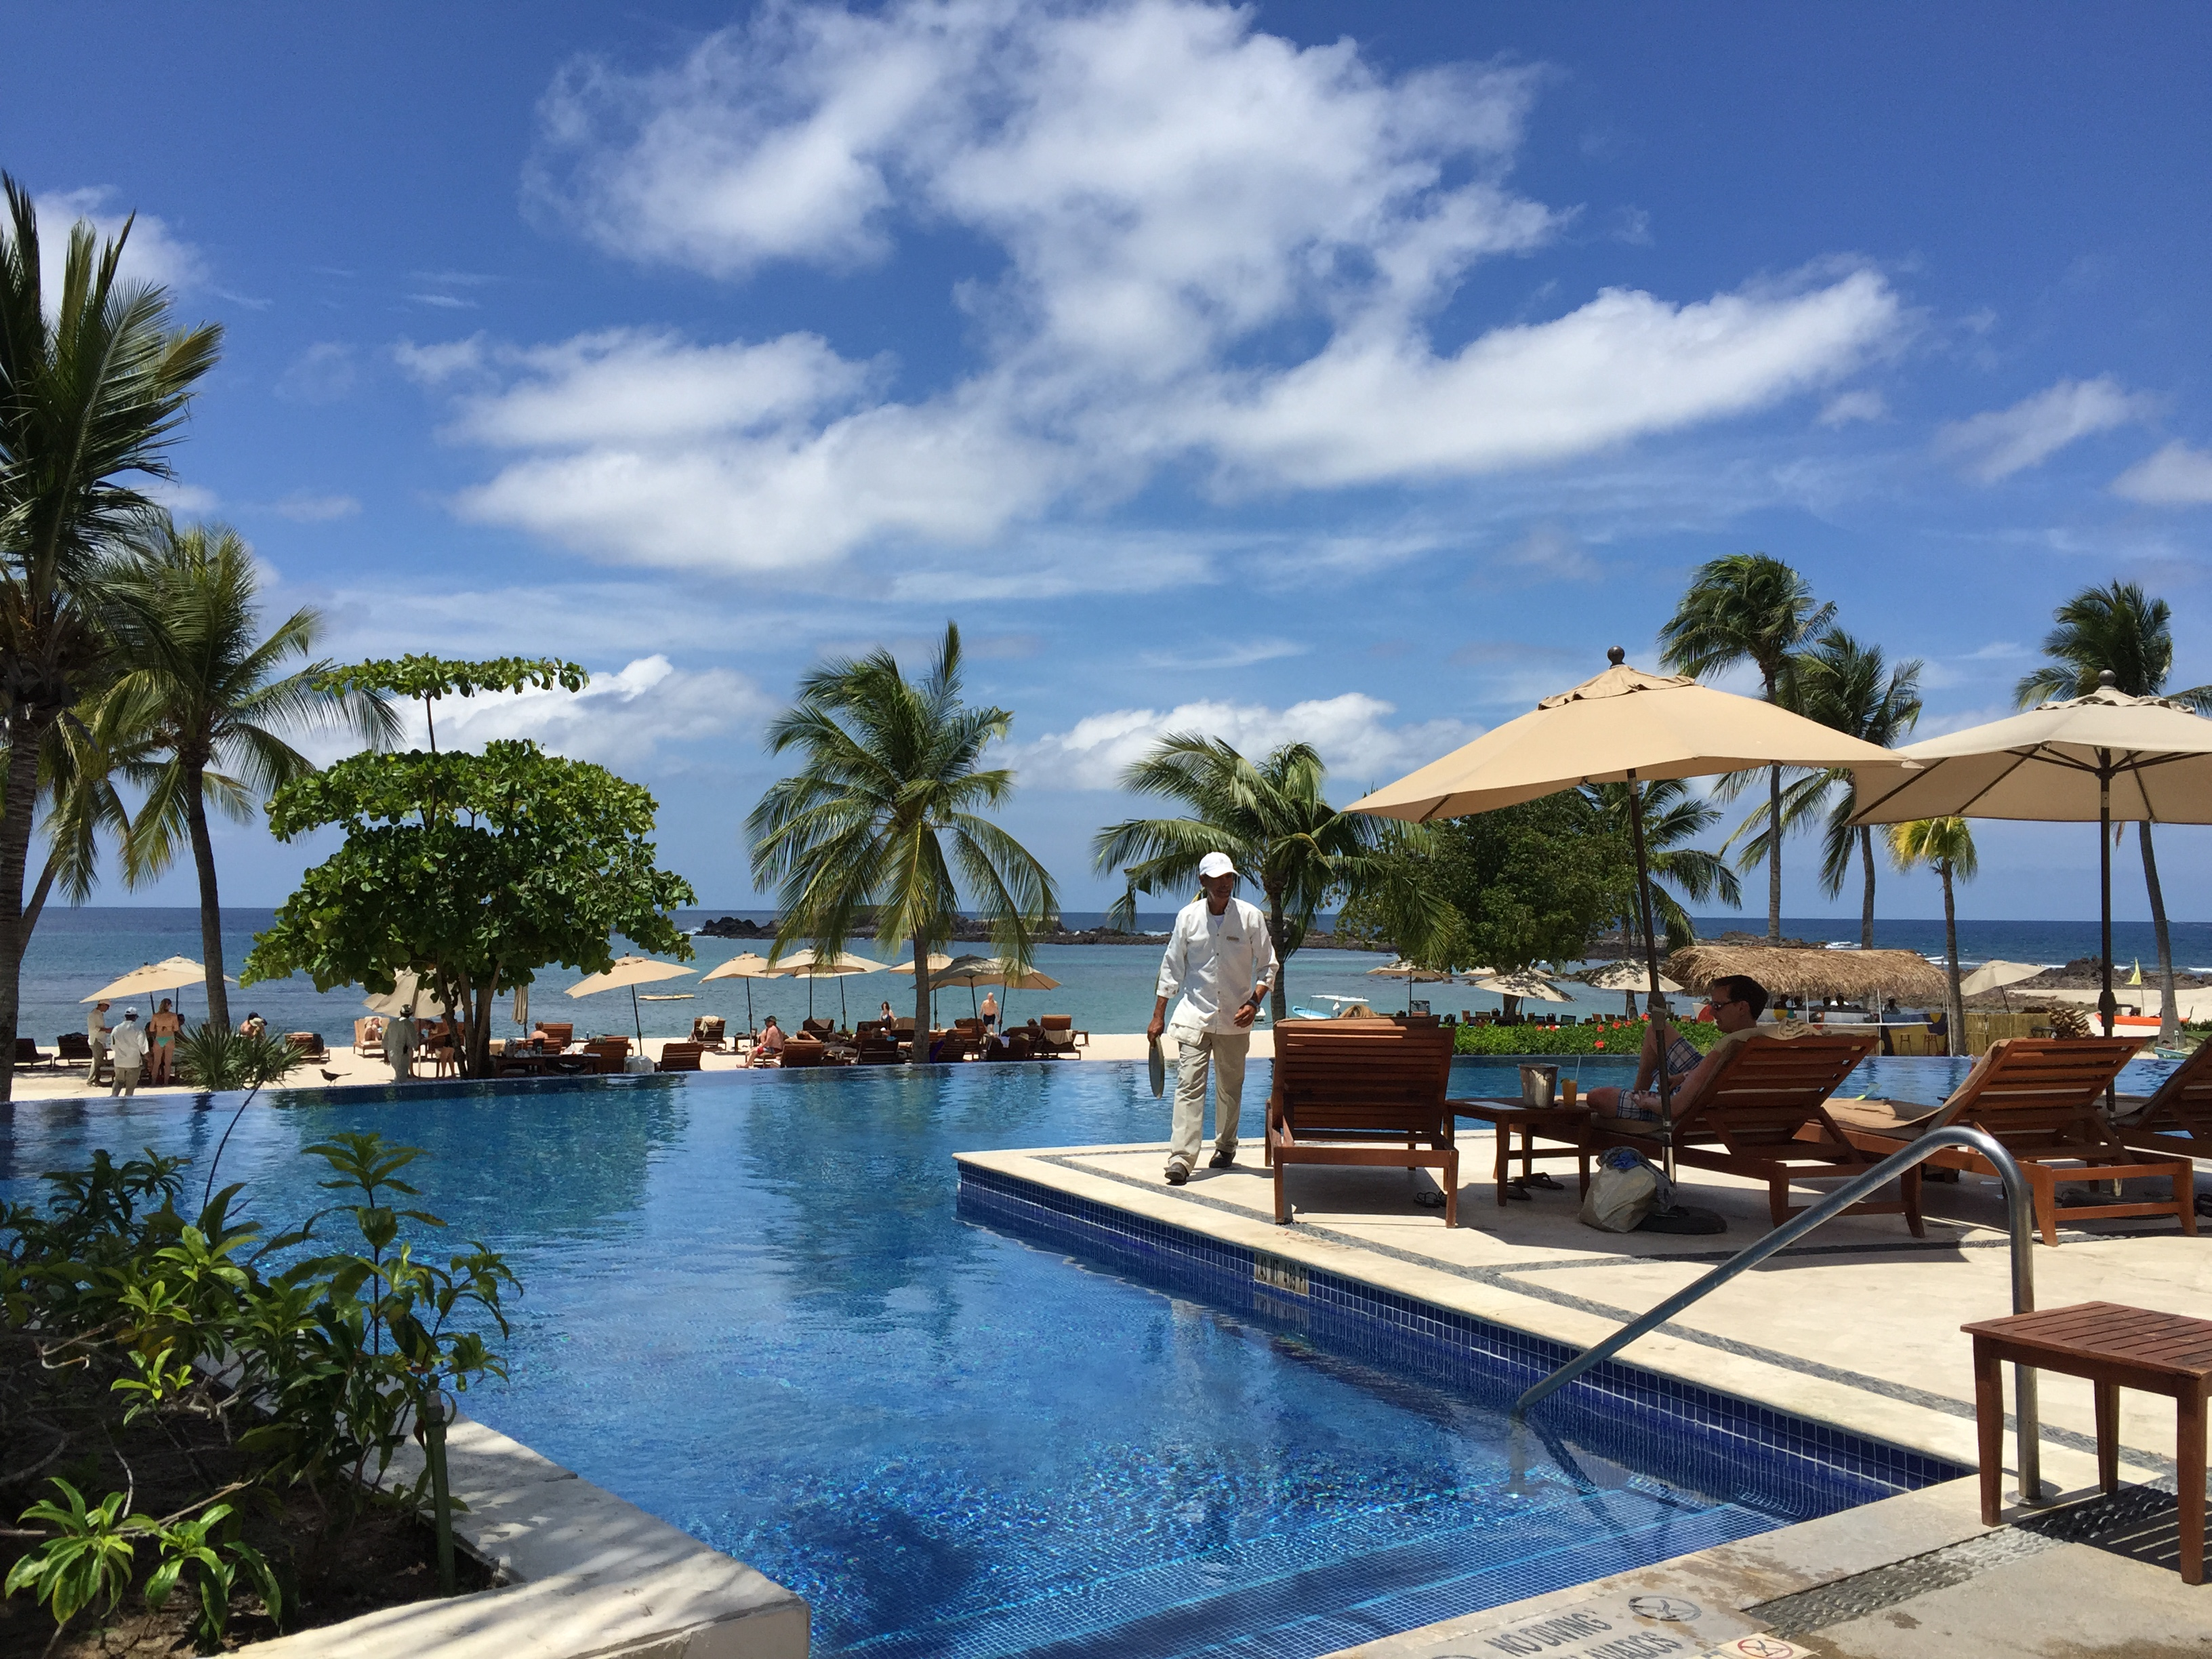 St Regis Punta Mita Beach Club Pool